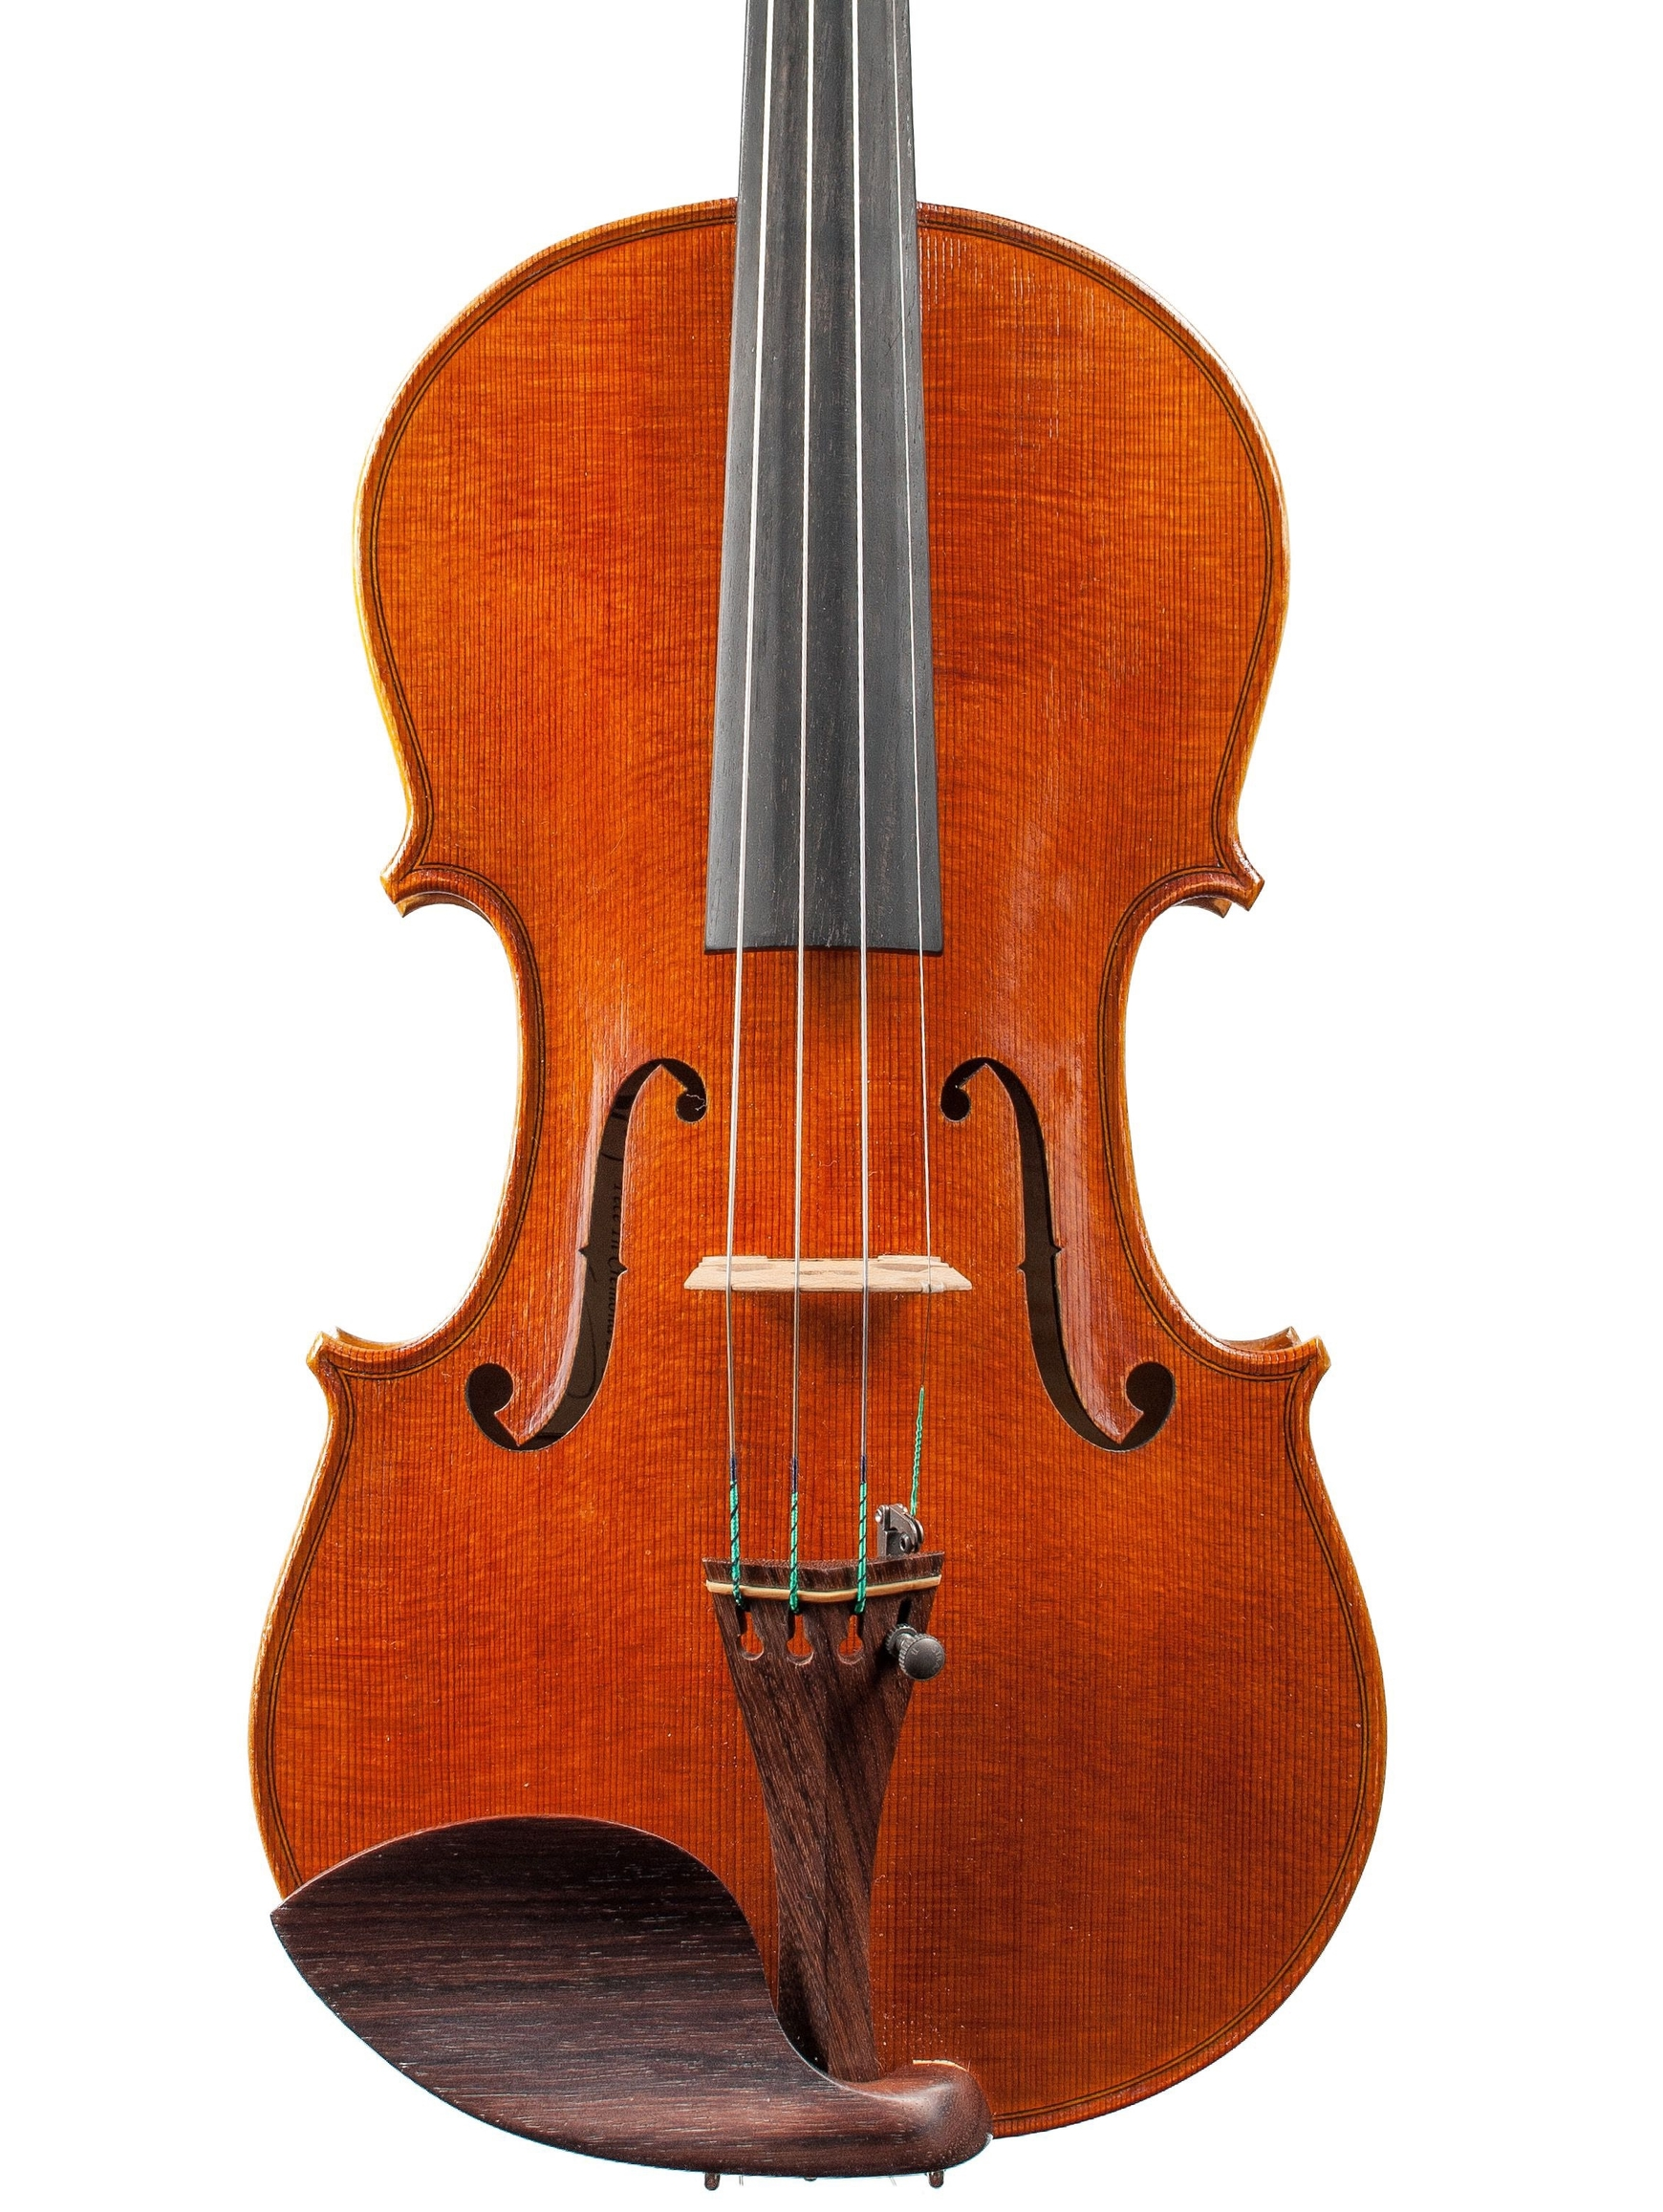 Violin by Lucas Fabro, 2018